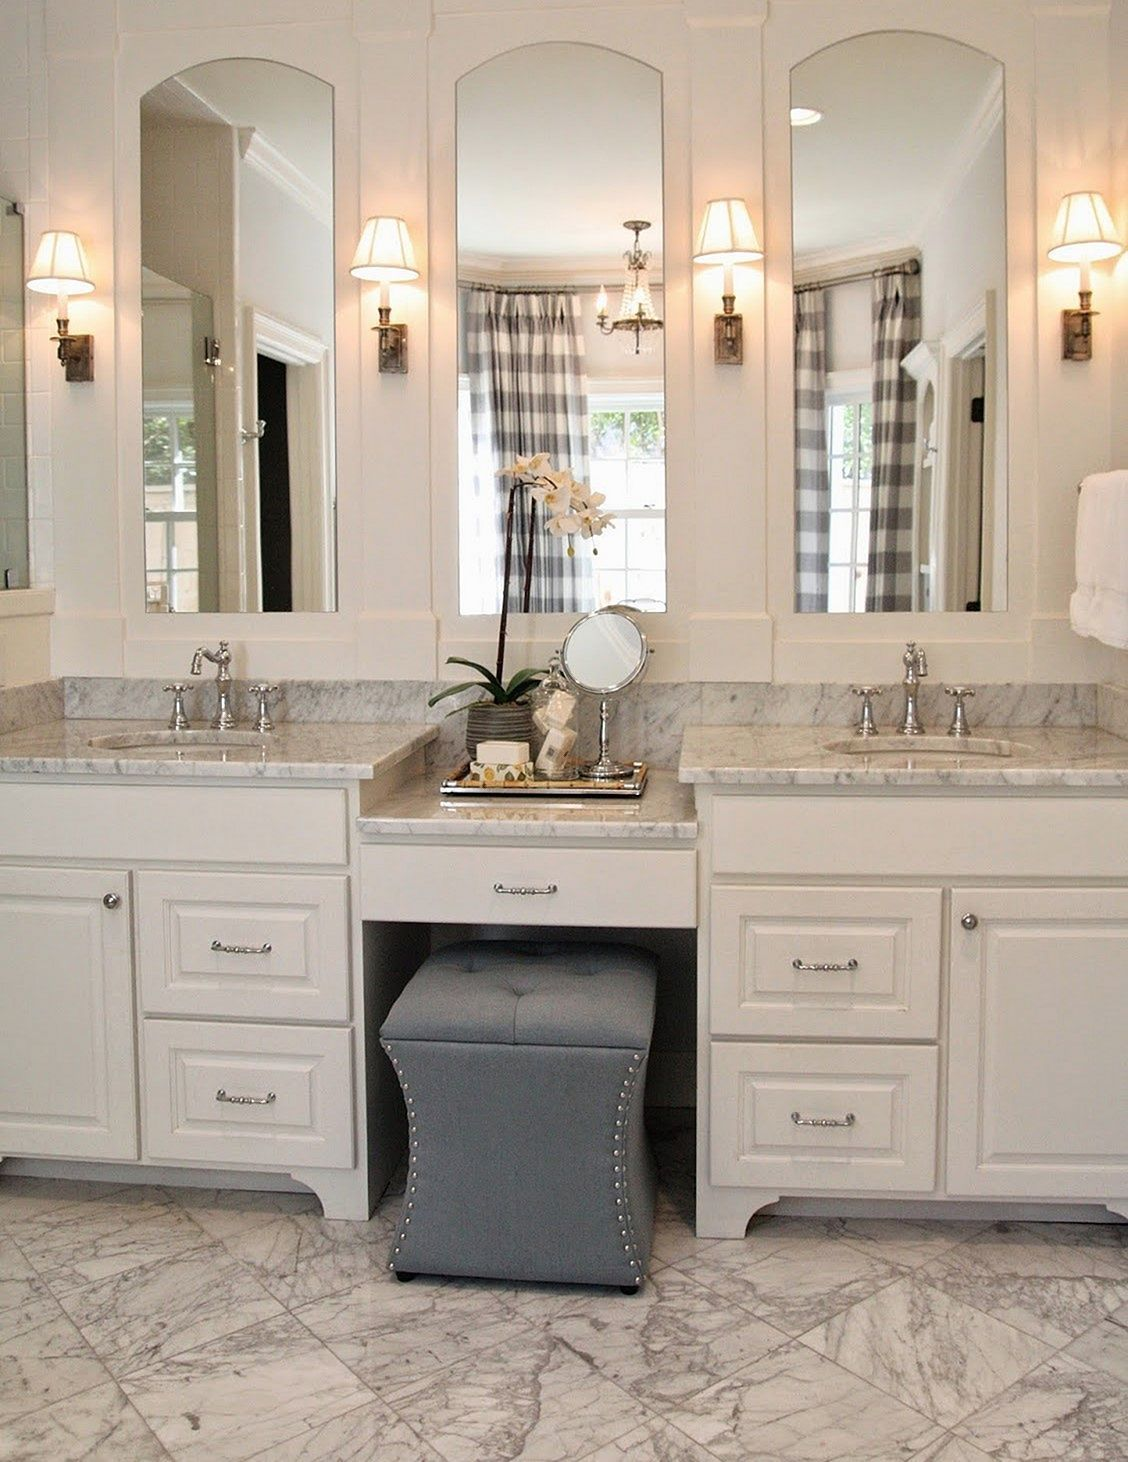 The Best Diy Master Bathroom Ideas Remodel On A Budget No 68 In 2020 Small Master Bathroom Master Bathroom Design Double Vanity Bathroom